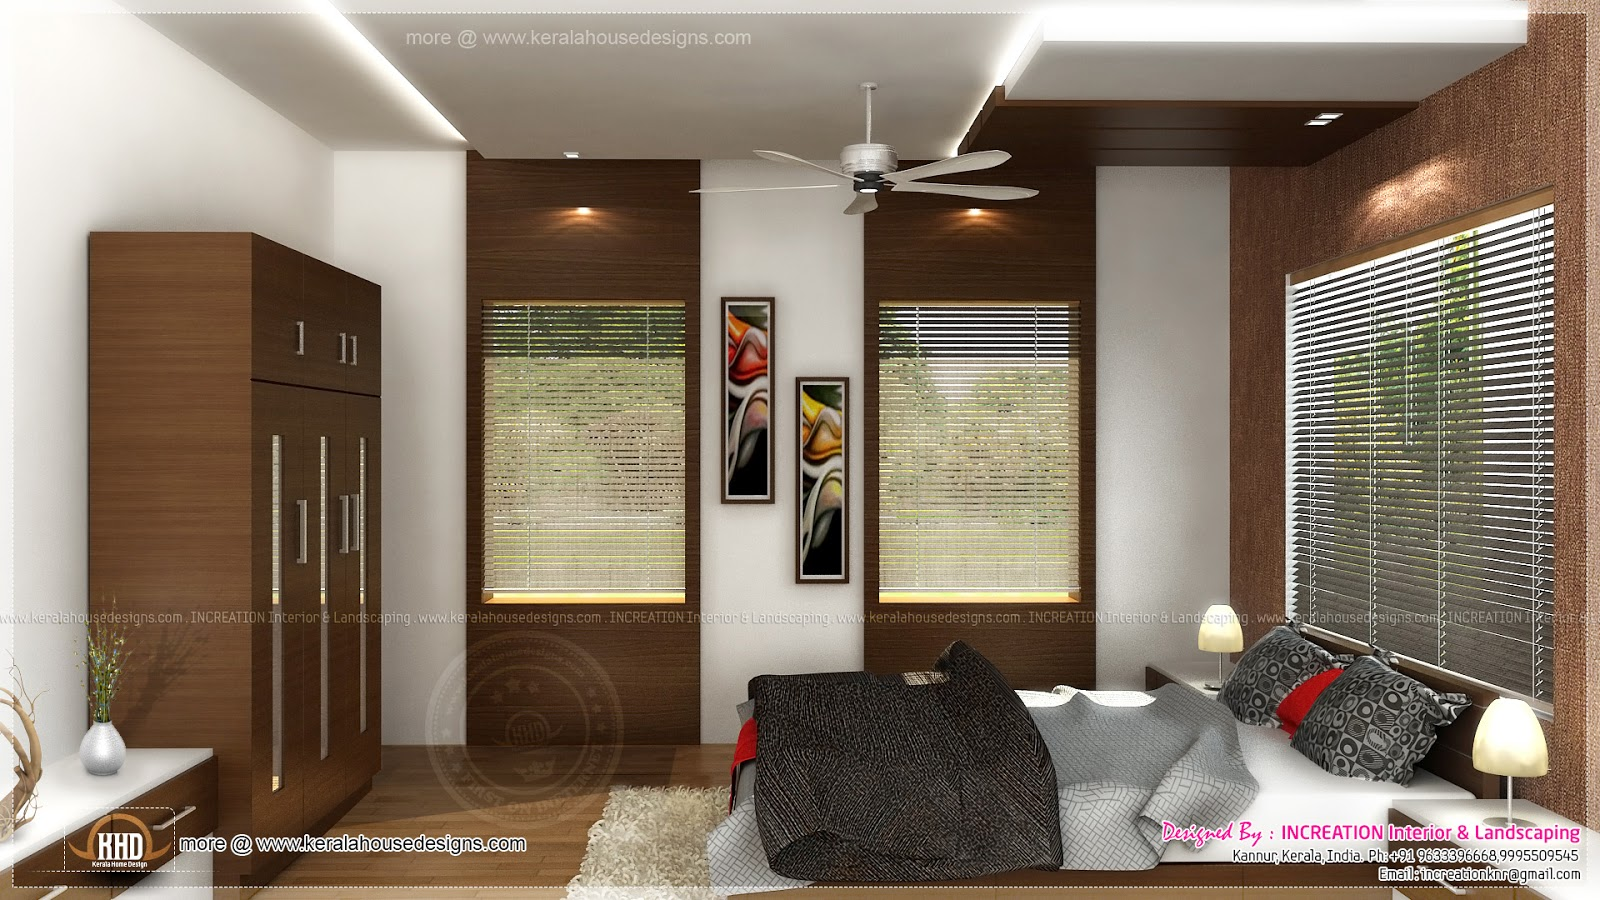 Interior designs from kannur kerala kerala home design and floor plans - House interior designs ...